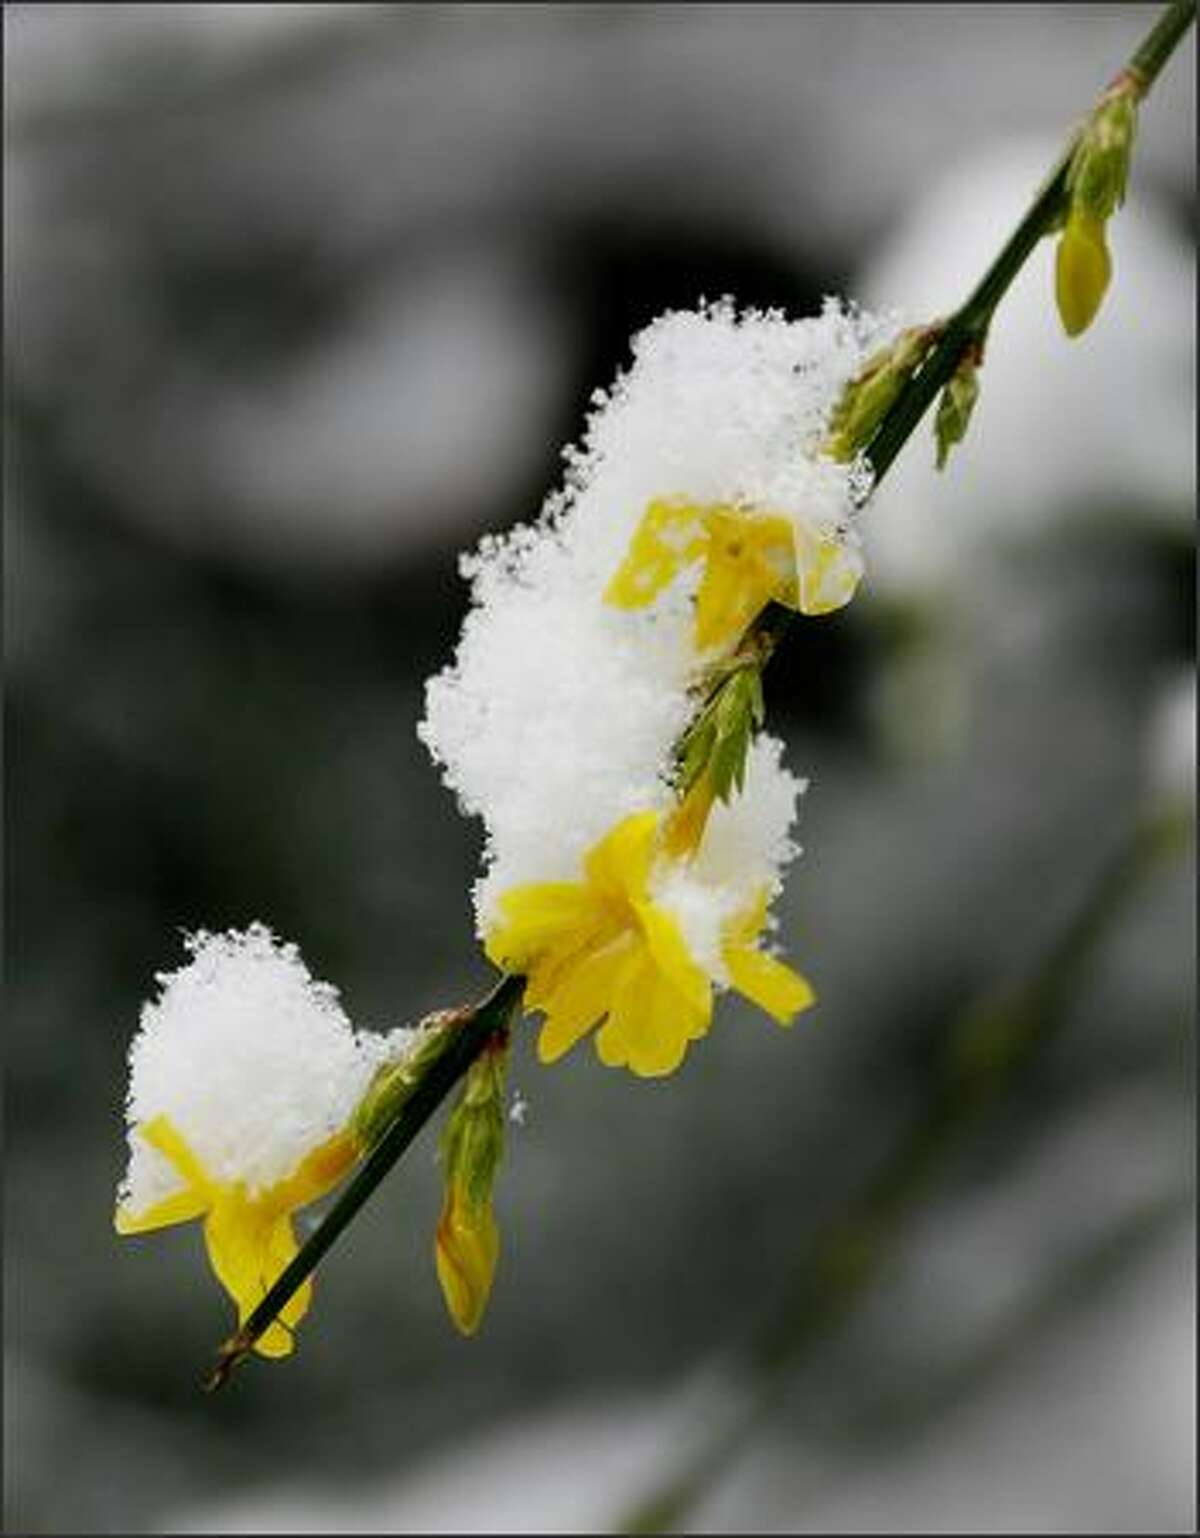 Snow covers witch hazel blossoms in the Washington Park Arboretum in Seattle.